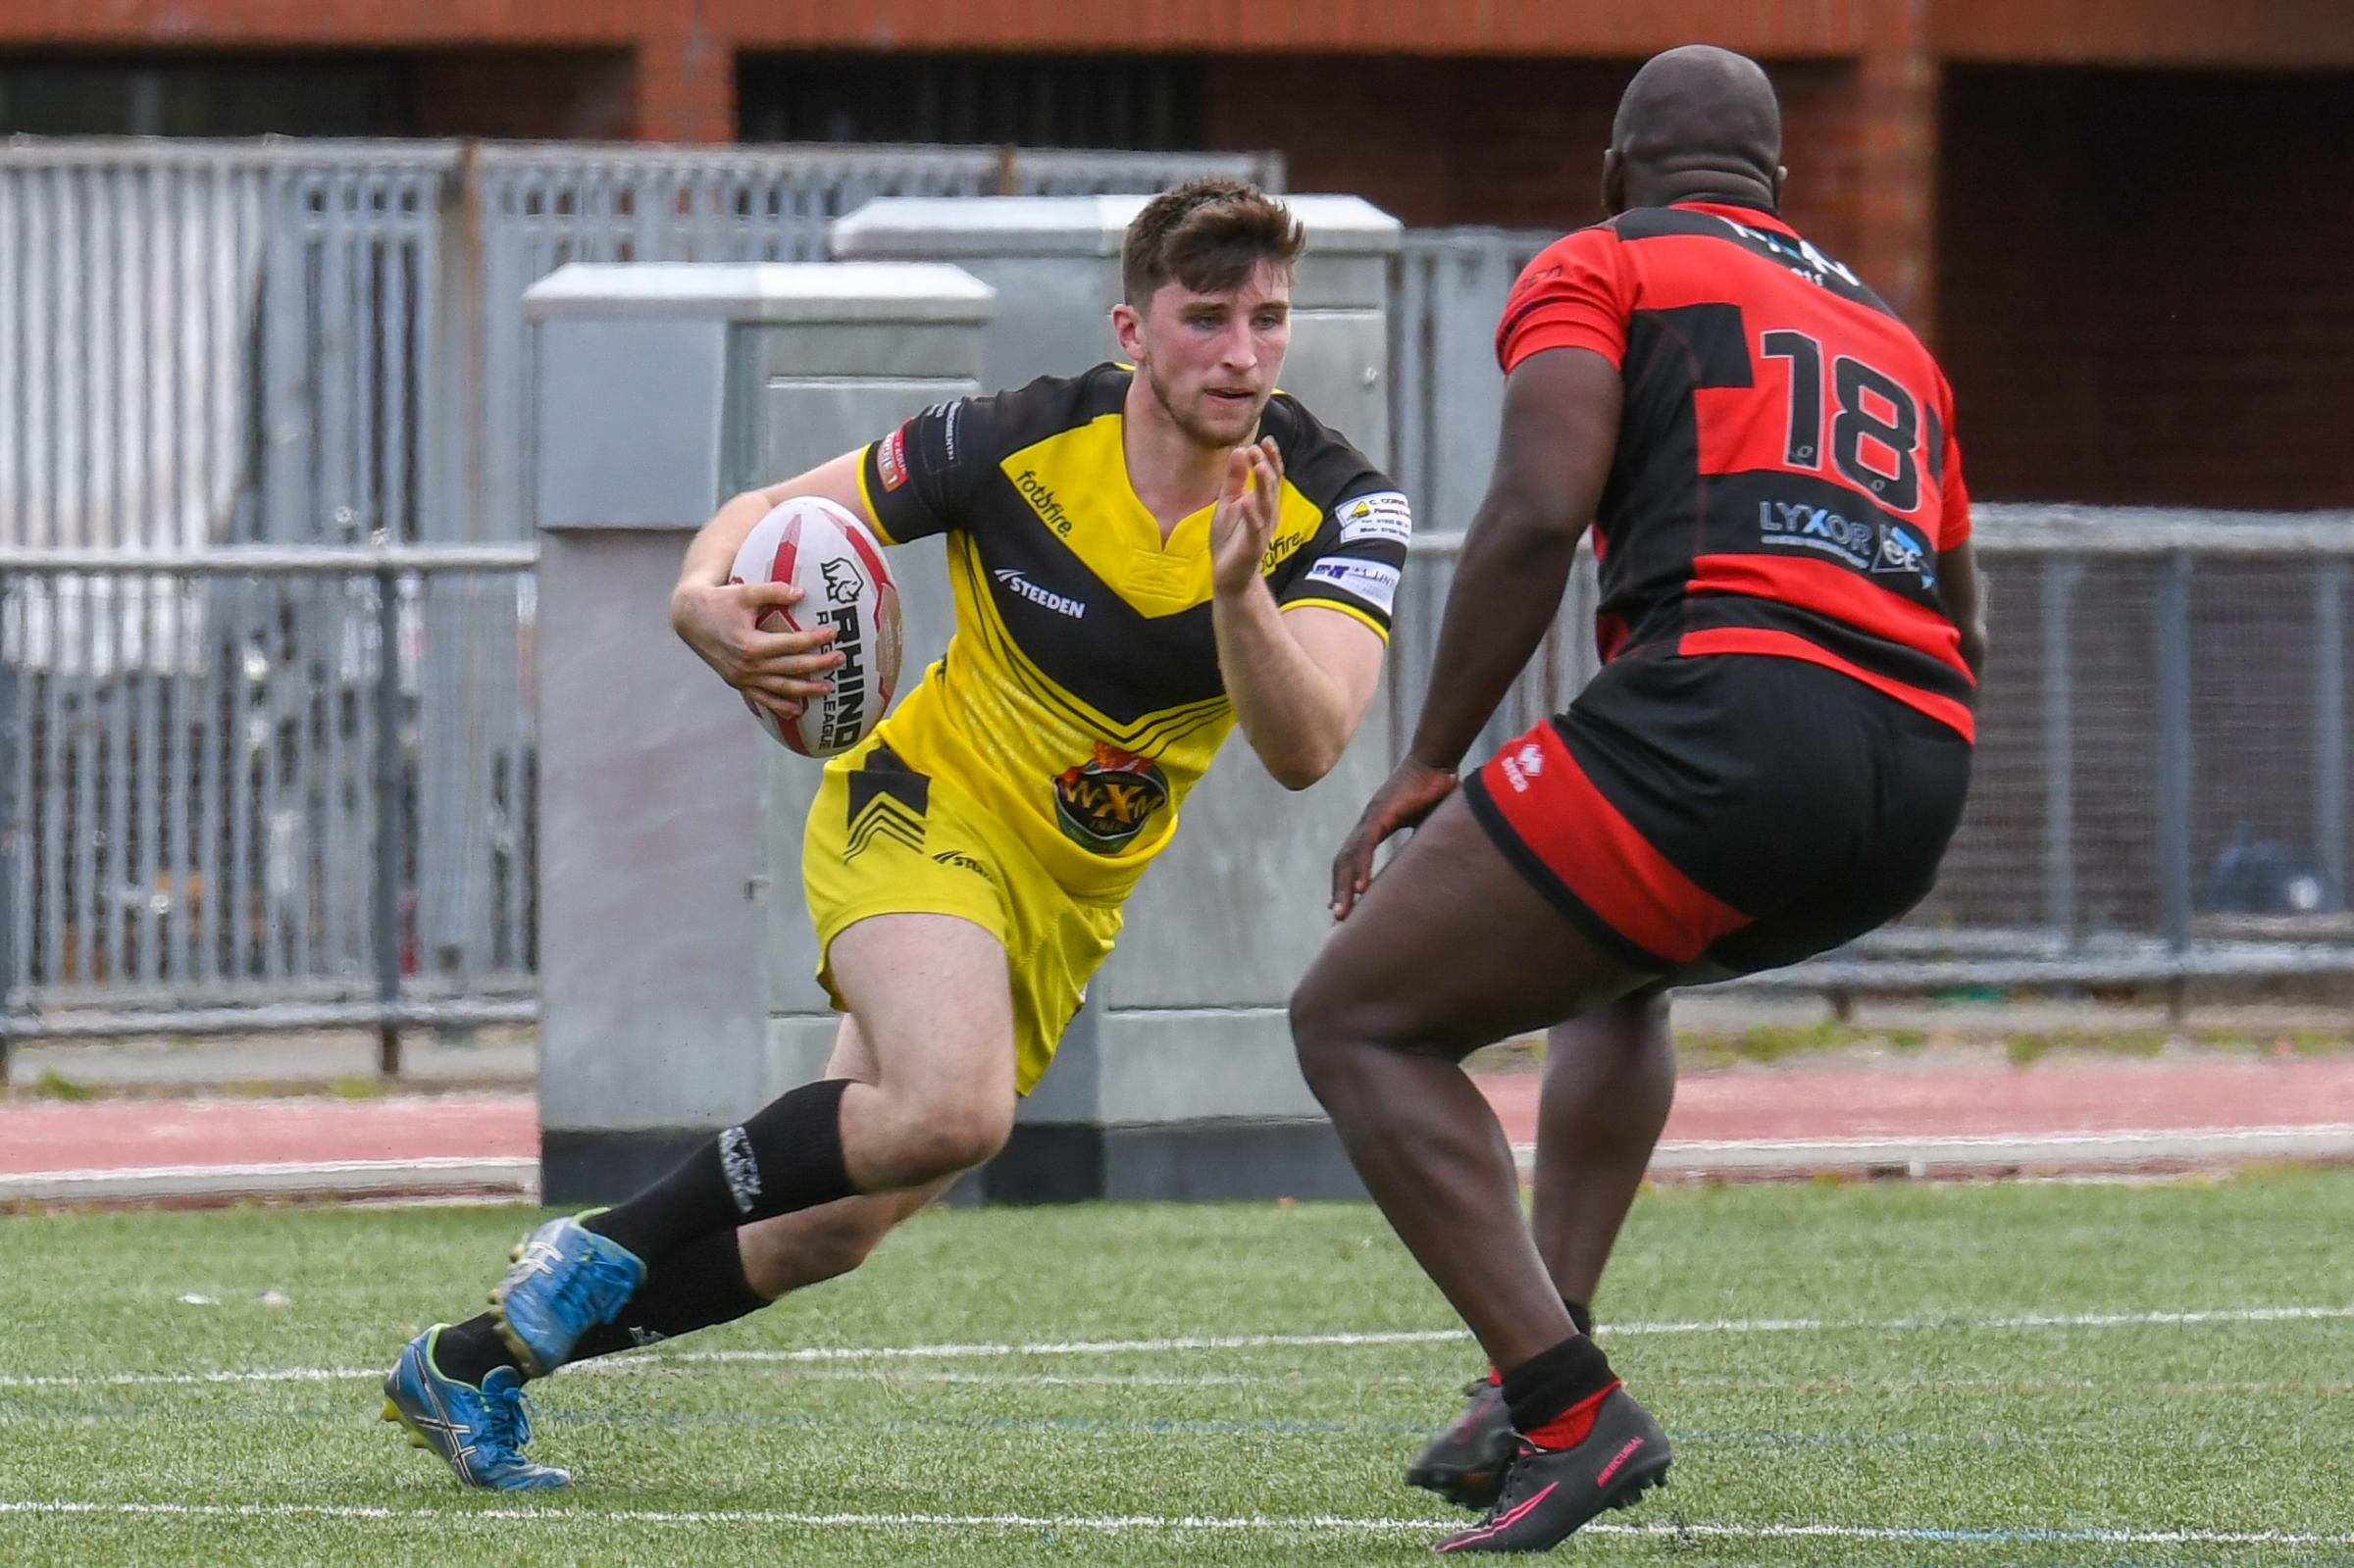 Crusaders winger Jake Knox powers on the attack against London Skolars. Photo: Richard Long.